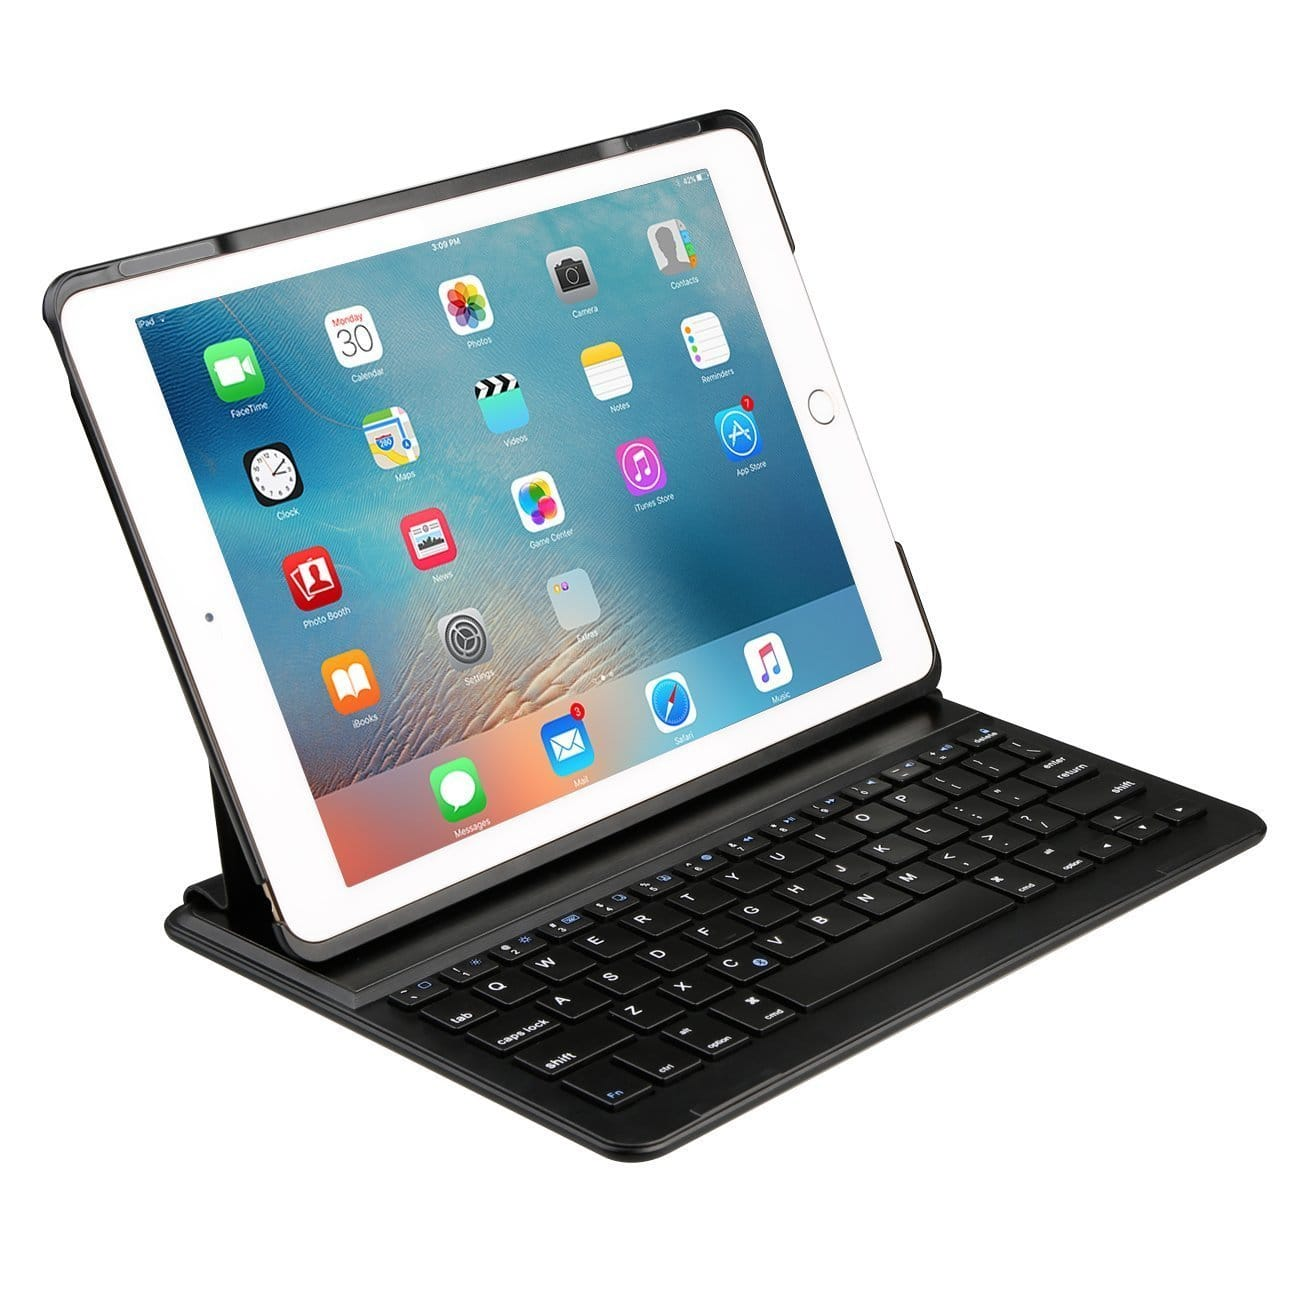 iPad Air 2,iPad Pro 9.7 Inch Keyboard Cover $16.50 @ Amazon FS